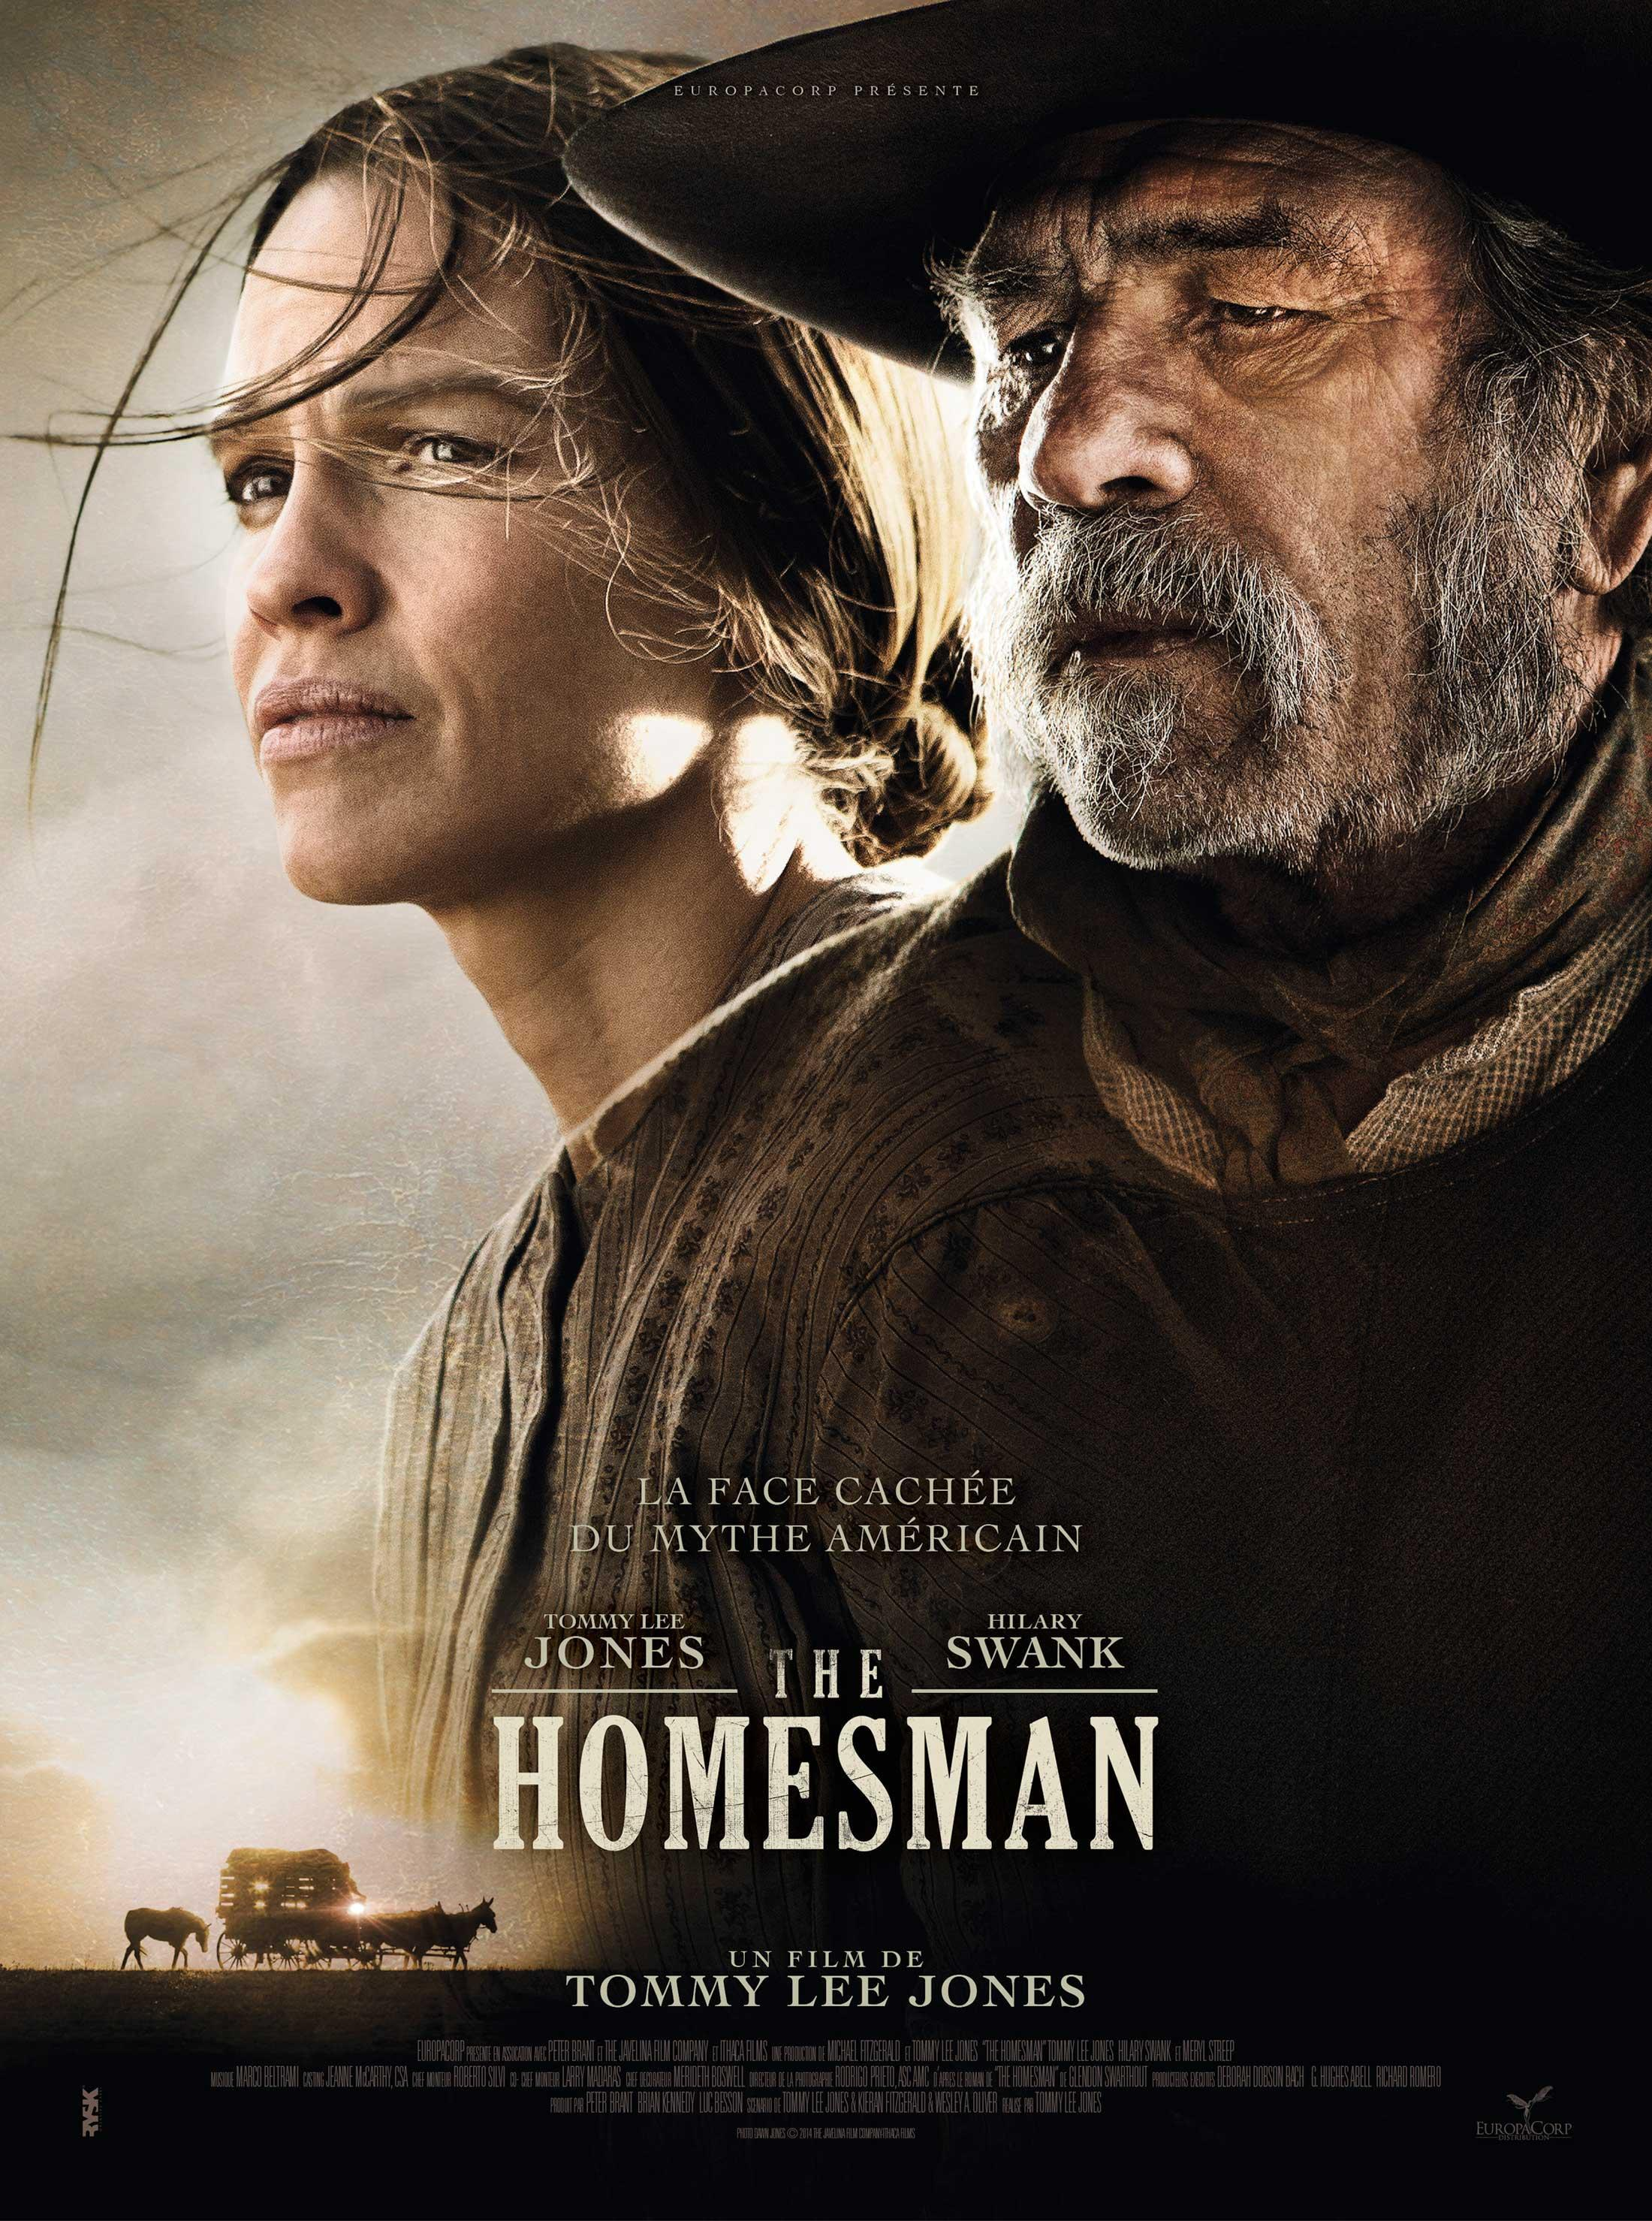 The Homesman Movie Review English